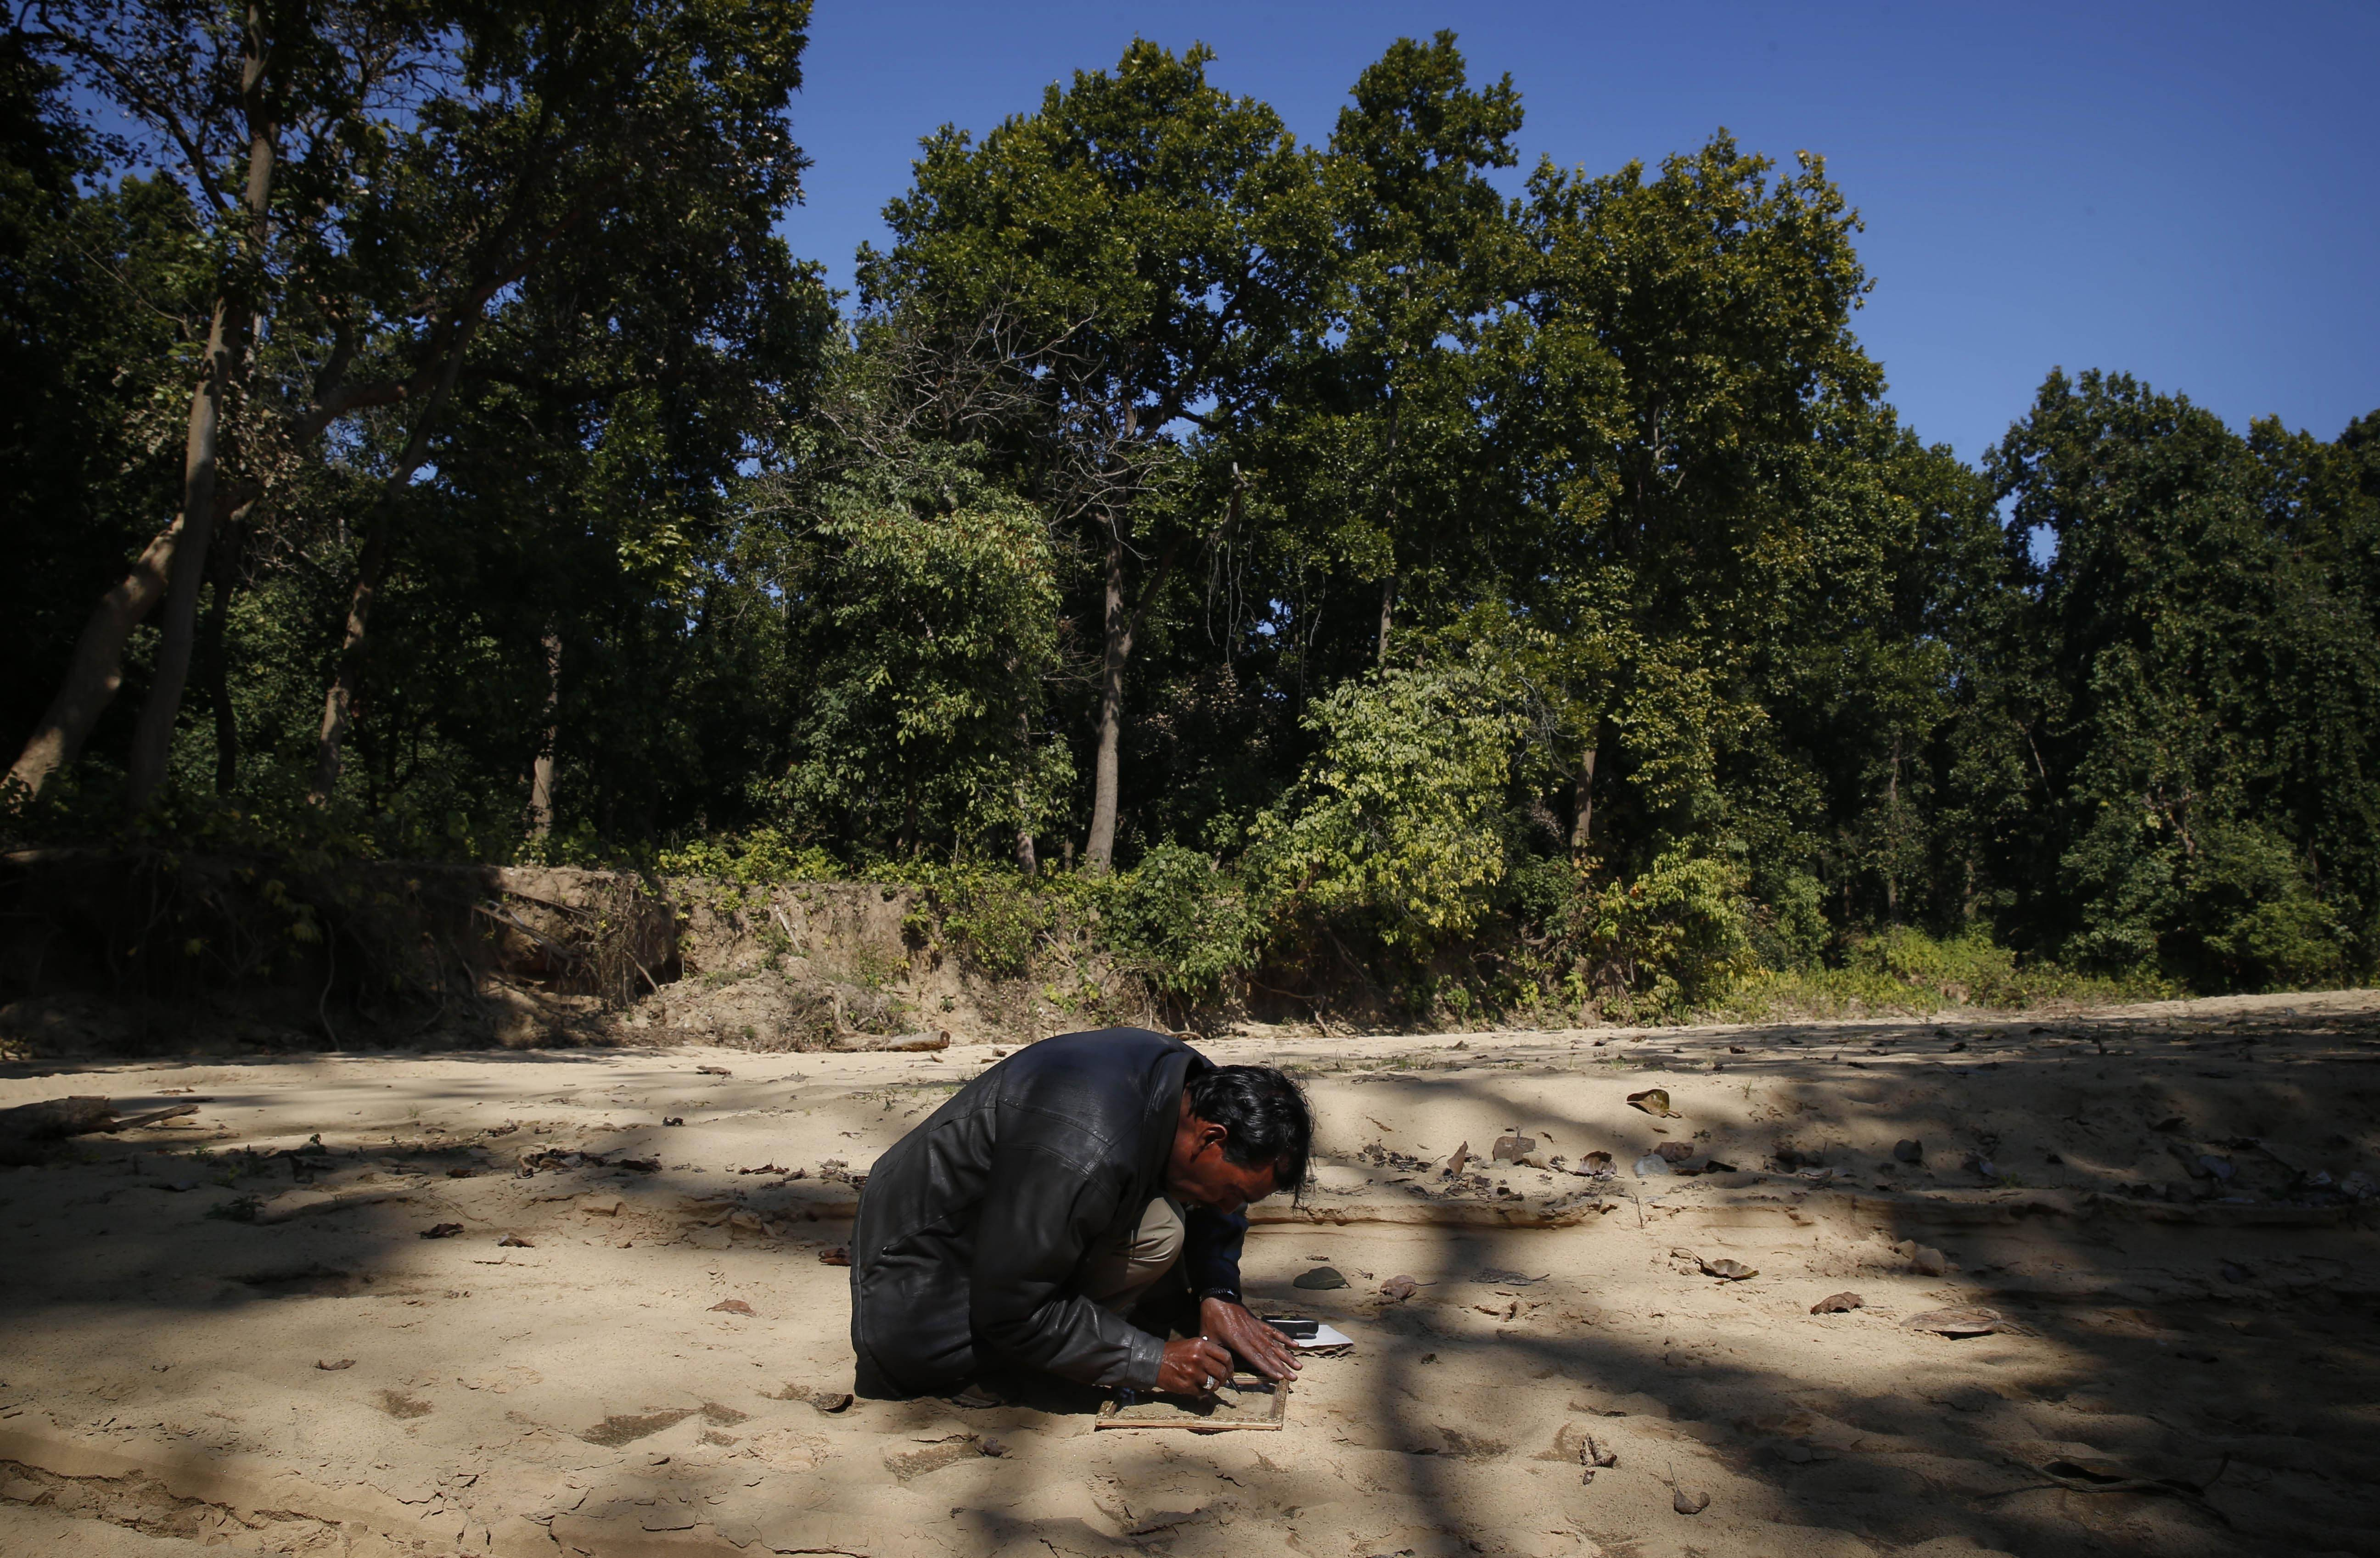 A forest official traces the outlines of the imprint of a tiger paw at the forest range of Sahuwala, in northern India. One of the challenges facing the hunters and forest officials is to properly identify the tiger that is killing human beings as the area is rich in fauna and home to several other tigers.